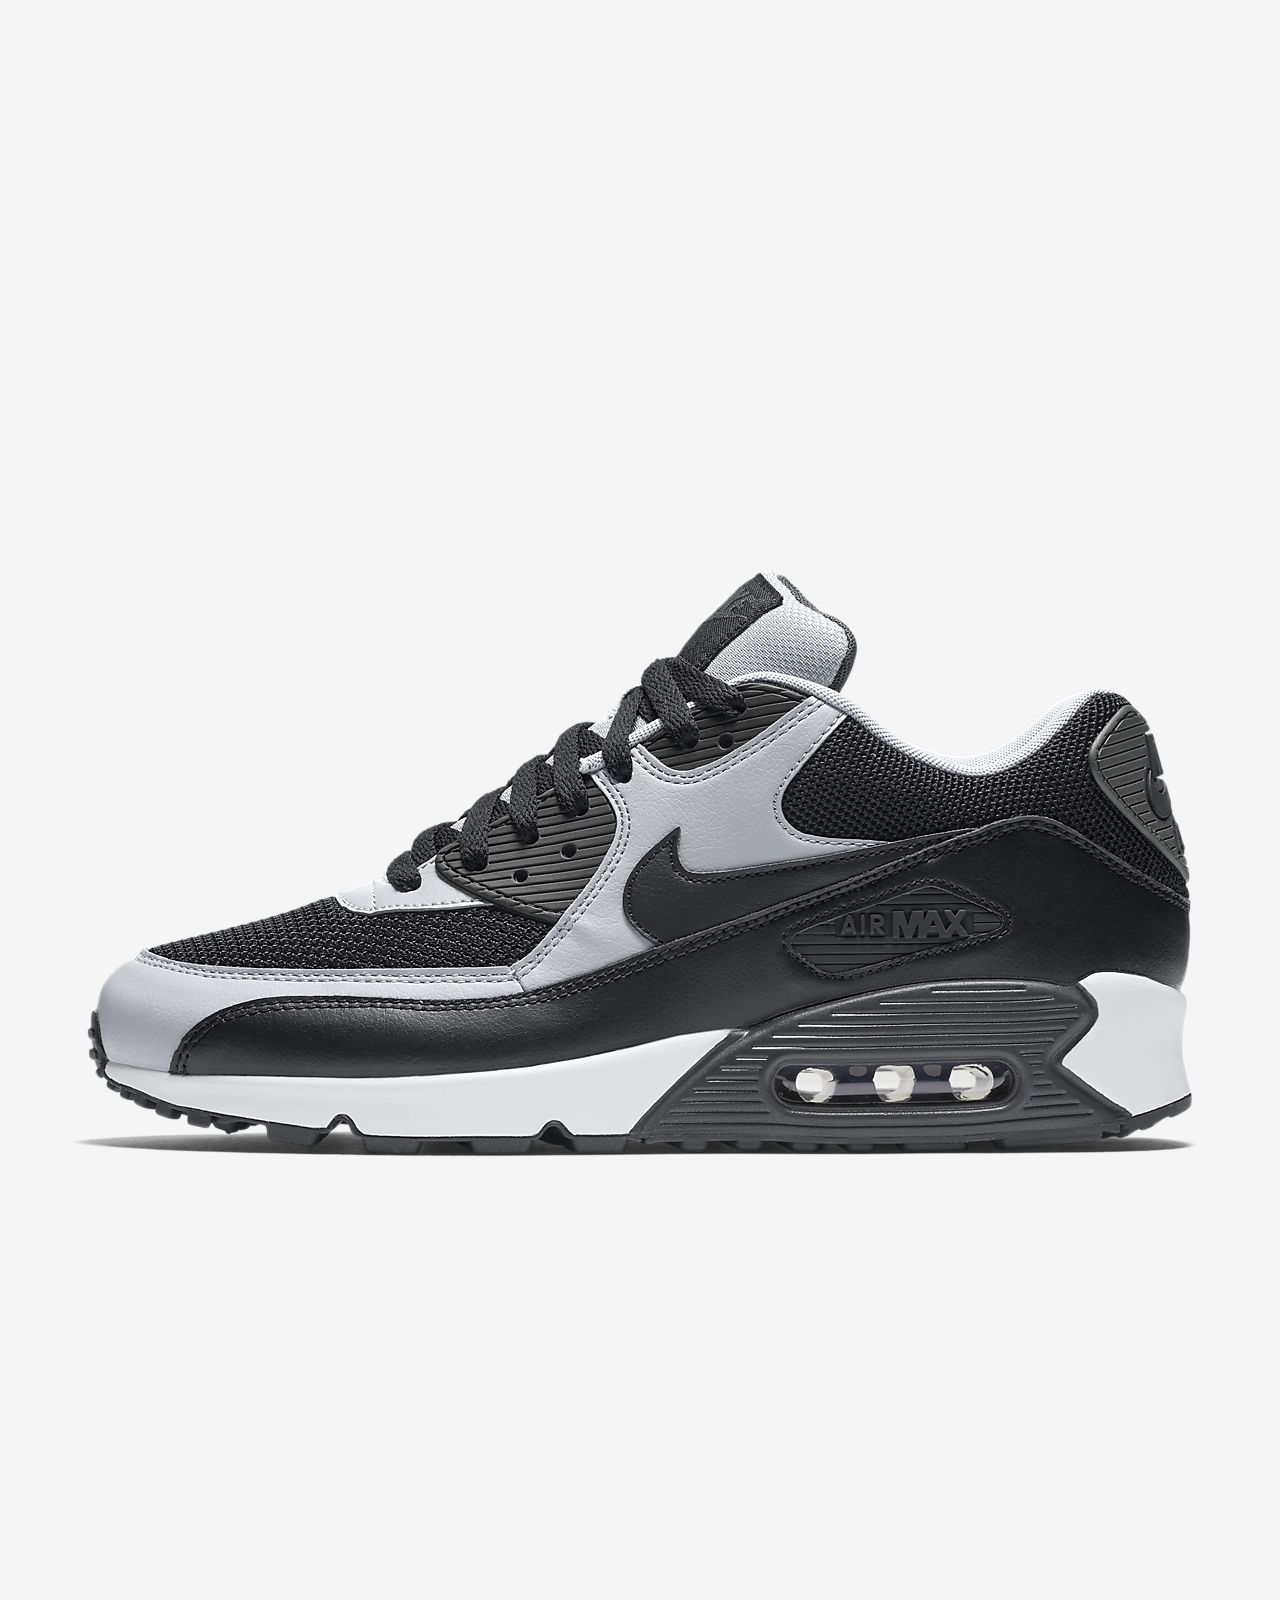 separation shoes db7ba 6a492 ... Nike Air Max 90 Essential Men s Shoe